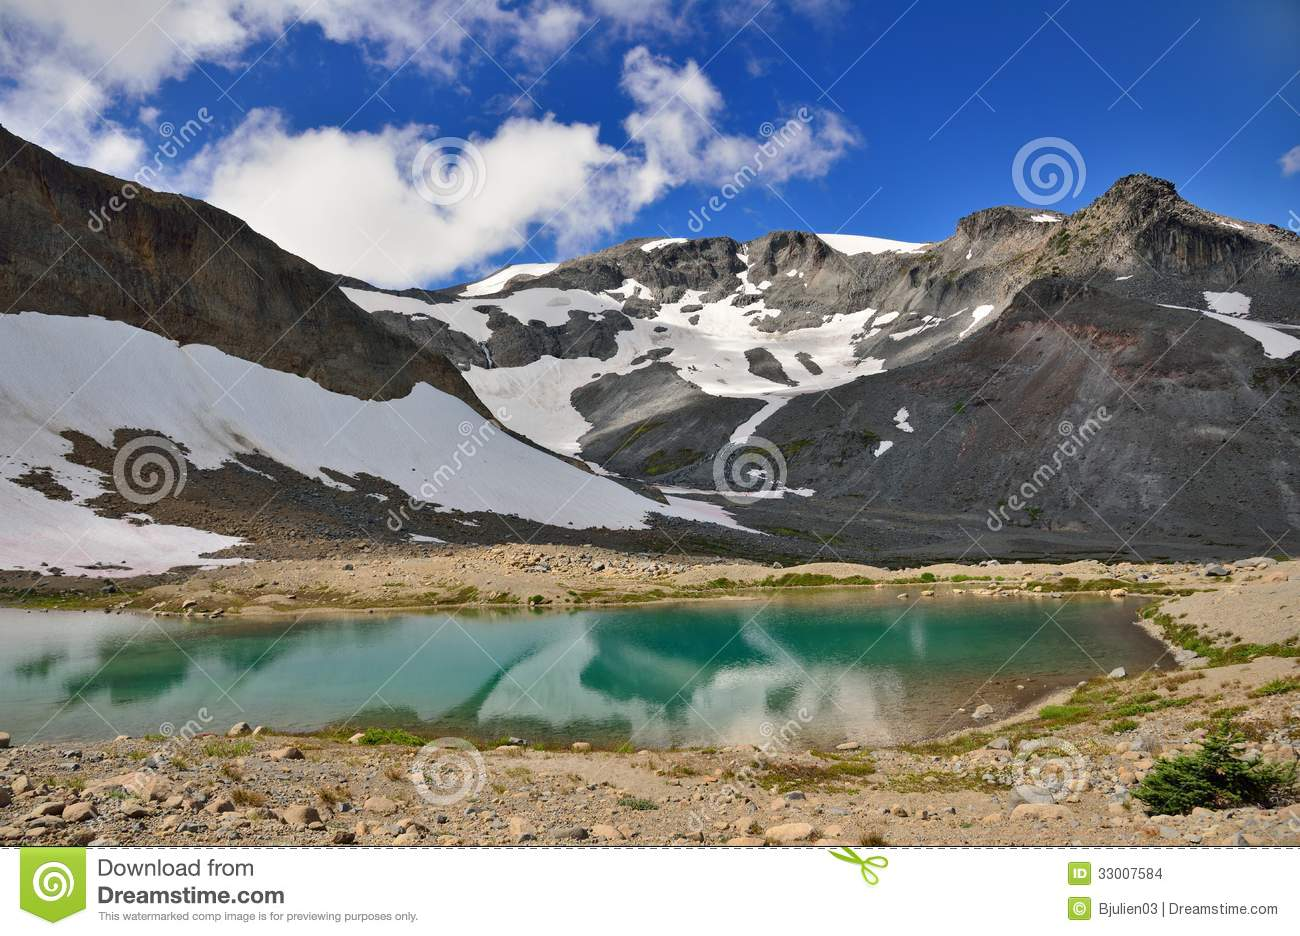 Reflection of snowy mountains in a lake in Mount Rainier